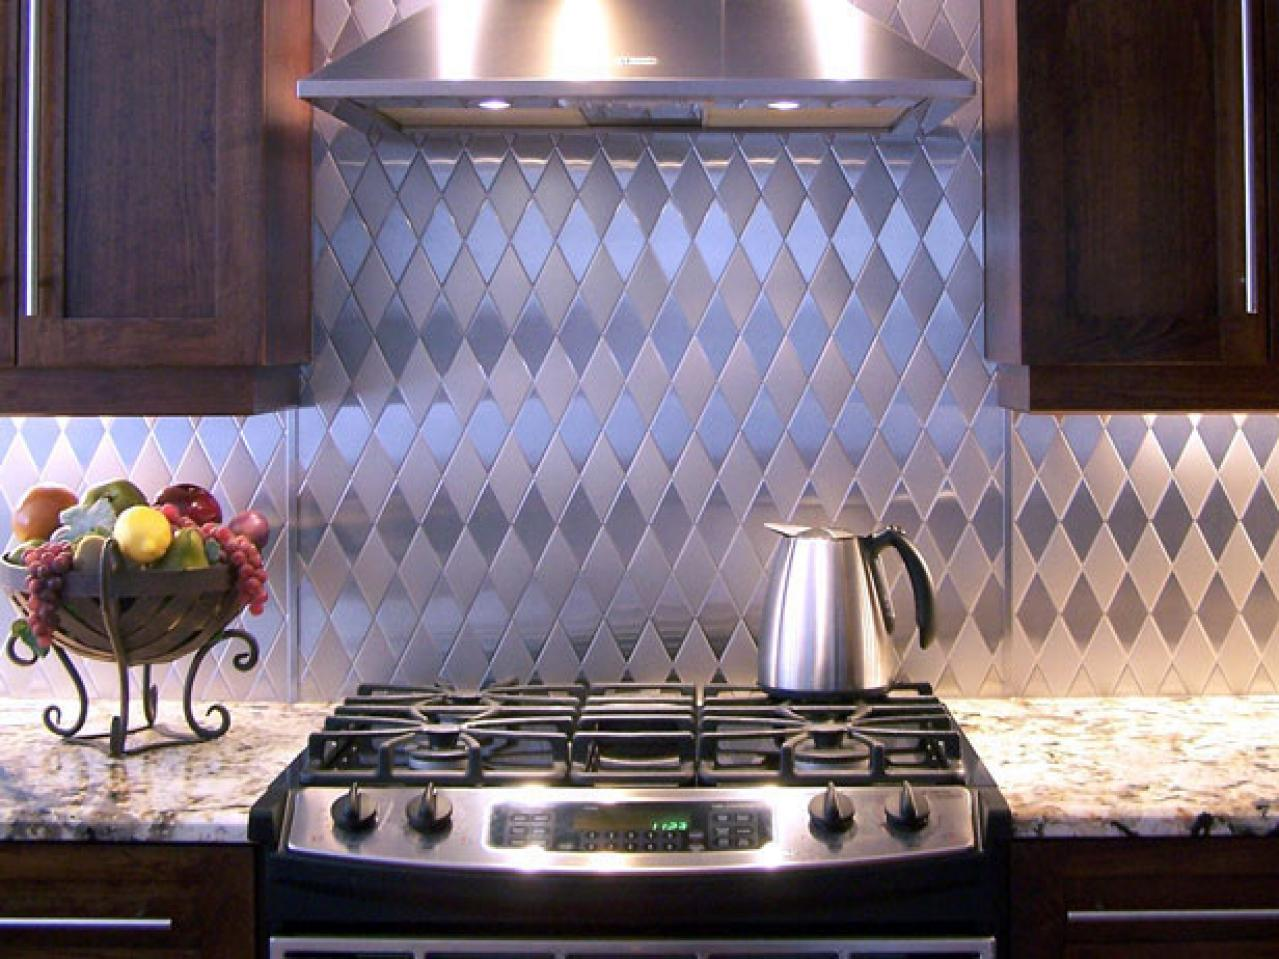 Textured And Patterned Stainless Steel Kitchen Backsplash Idea Large Gas Stove Luxurious Marble Kitchen Countertop